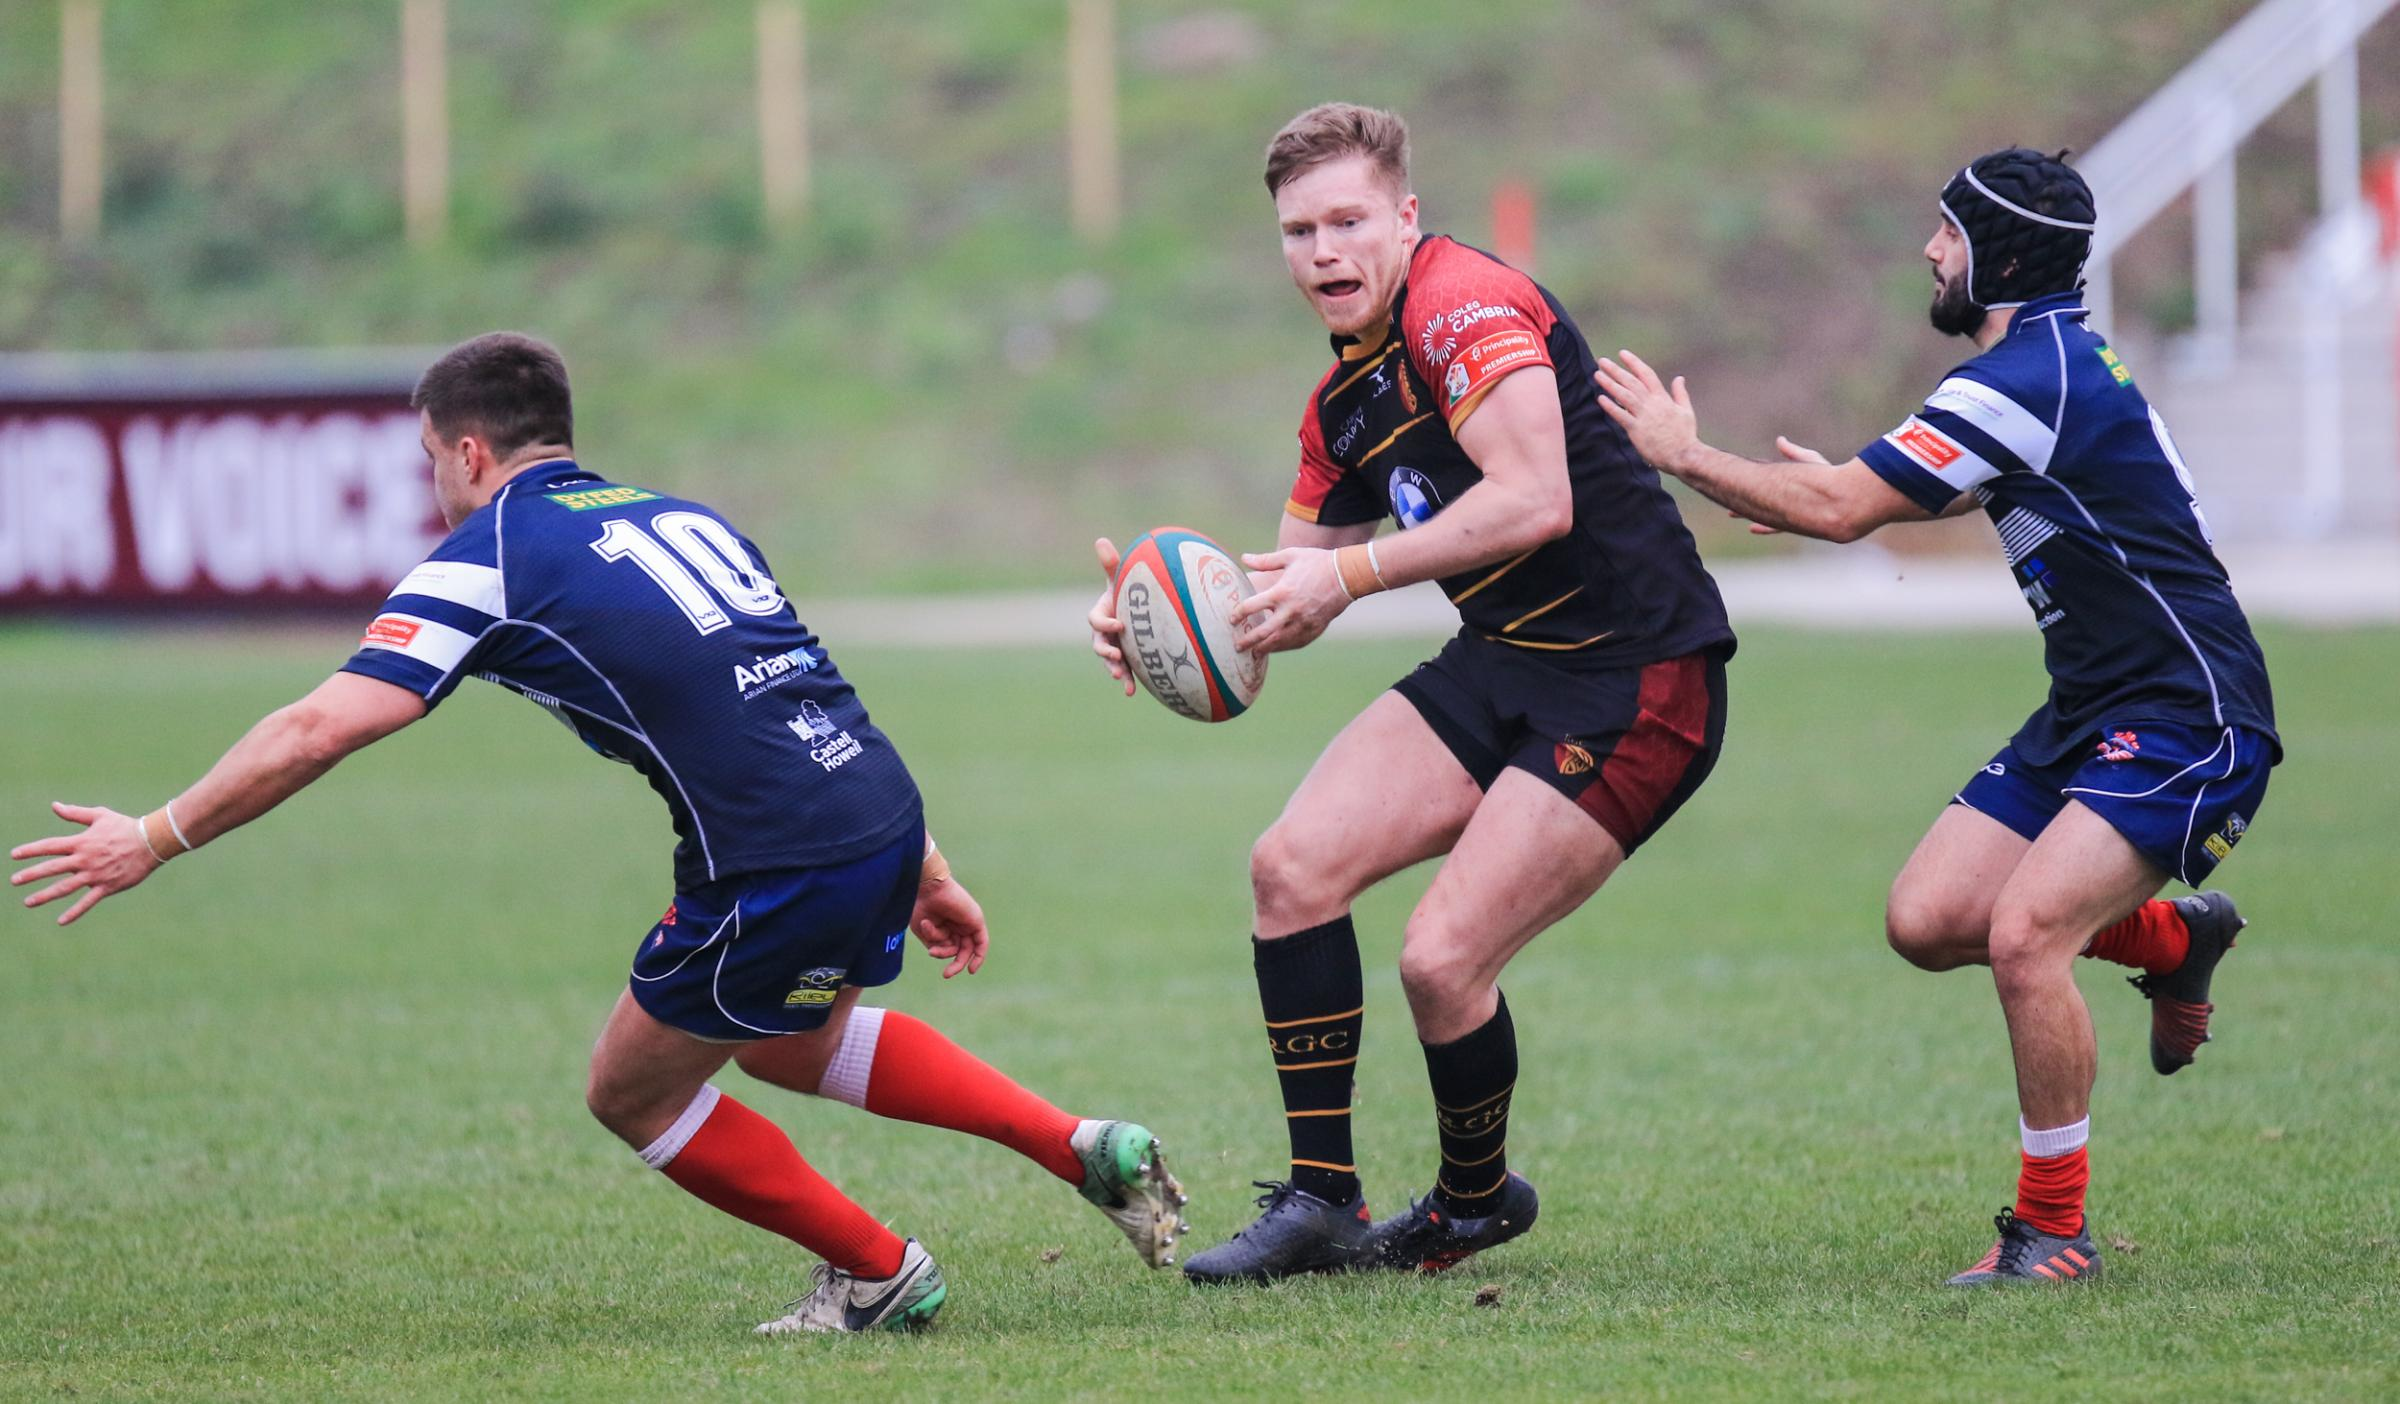 RGC picked up a bonus point in their defeat at Llanelli (Photo by Tony Bale)